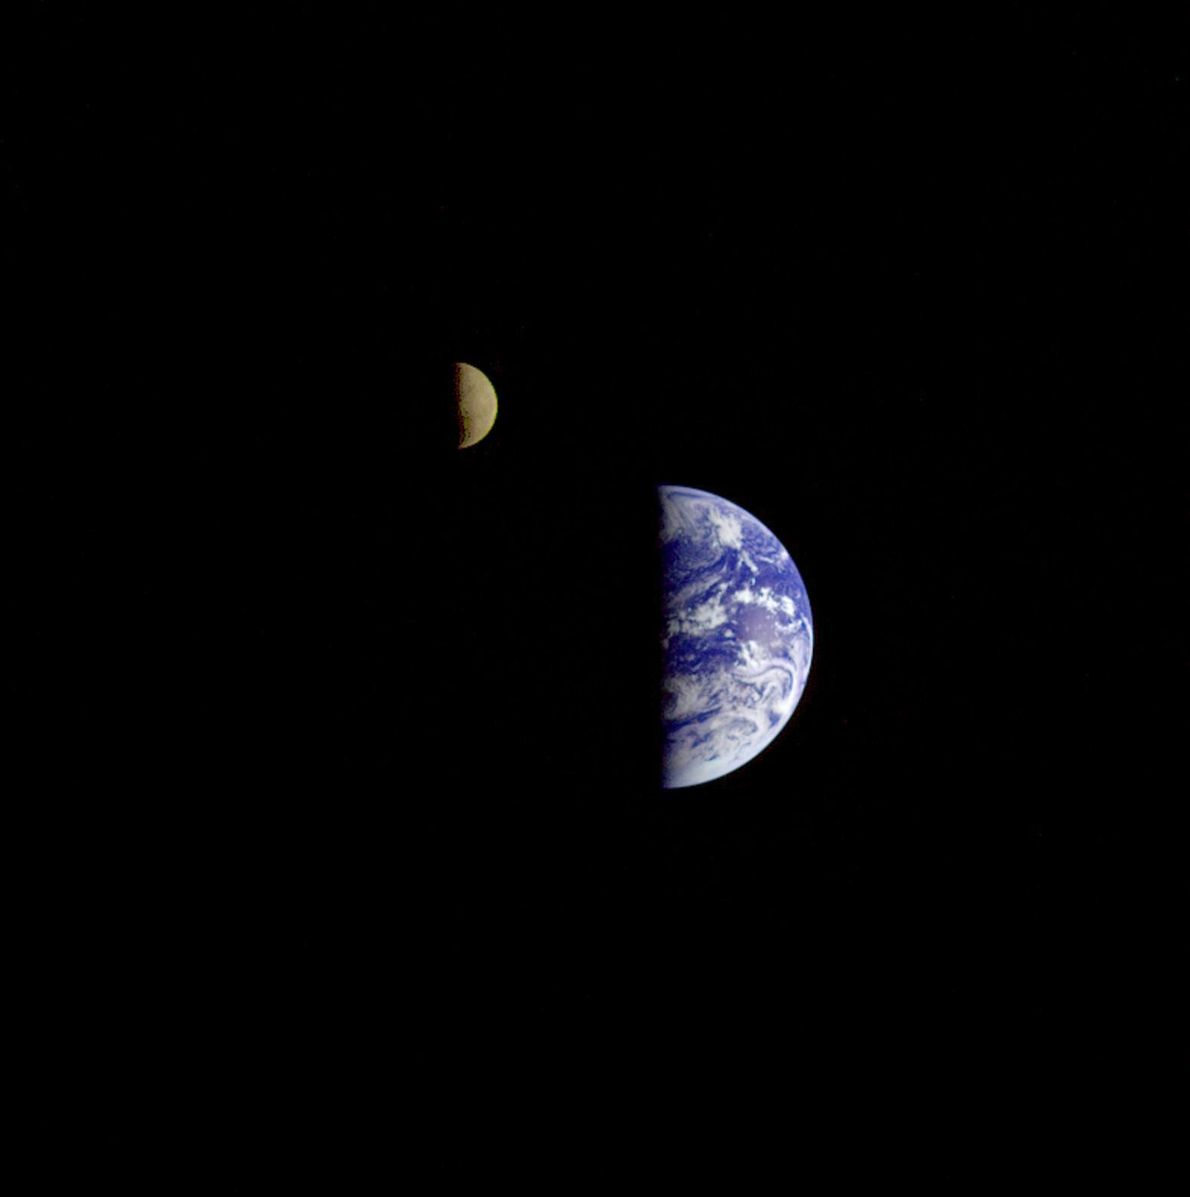 The Galileo spacecraft, the first to visit an astreroid and to thoroughly document Jupiter's moons, captured ...